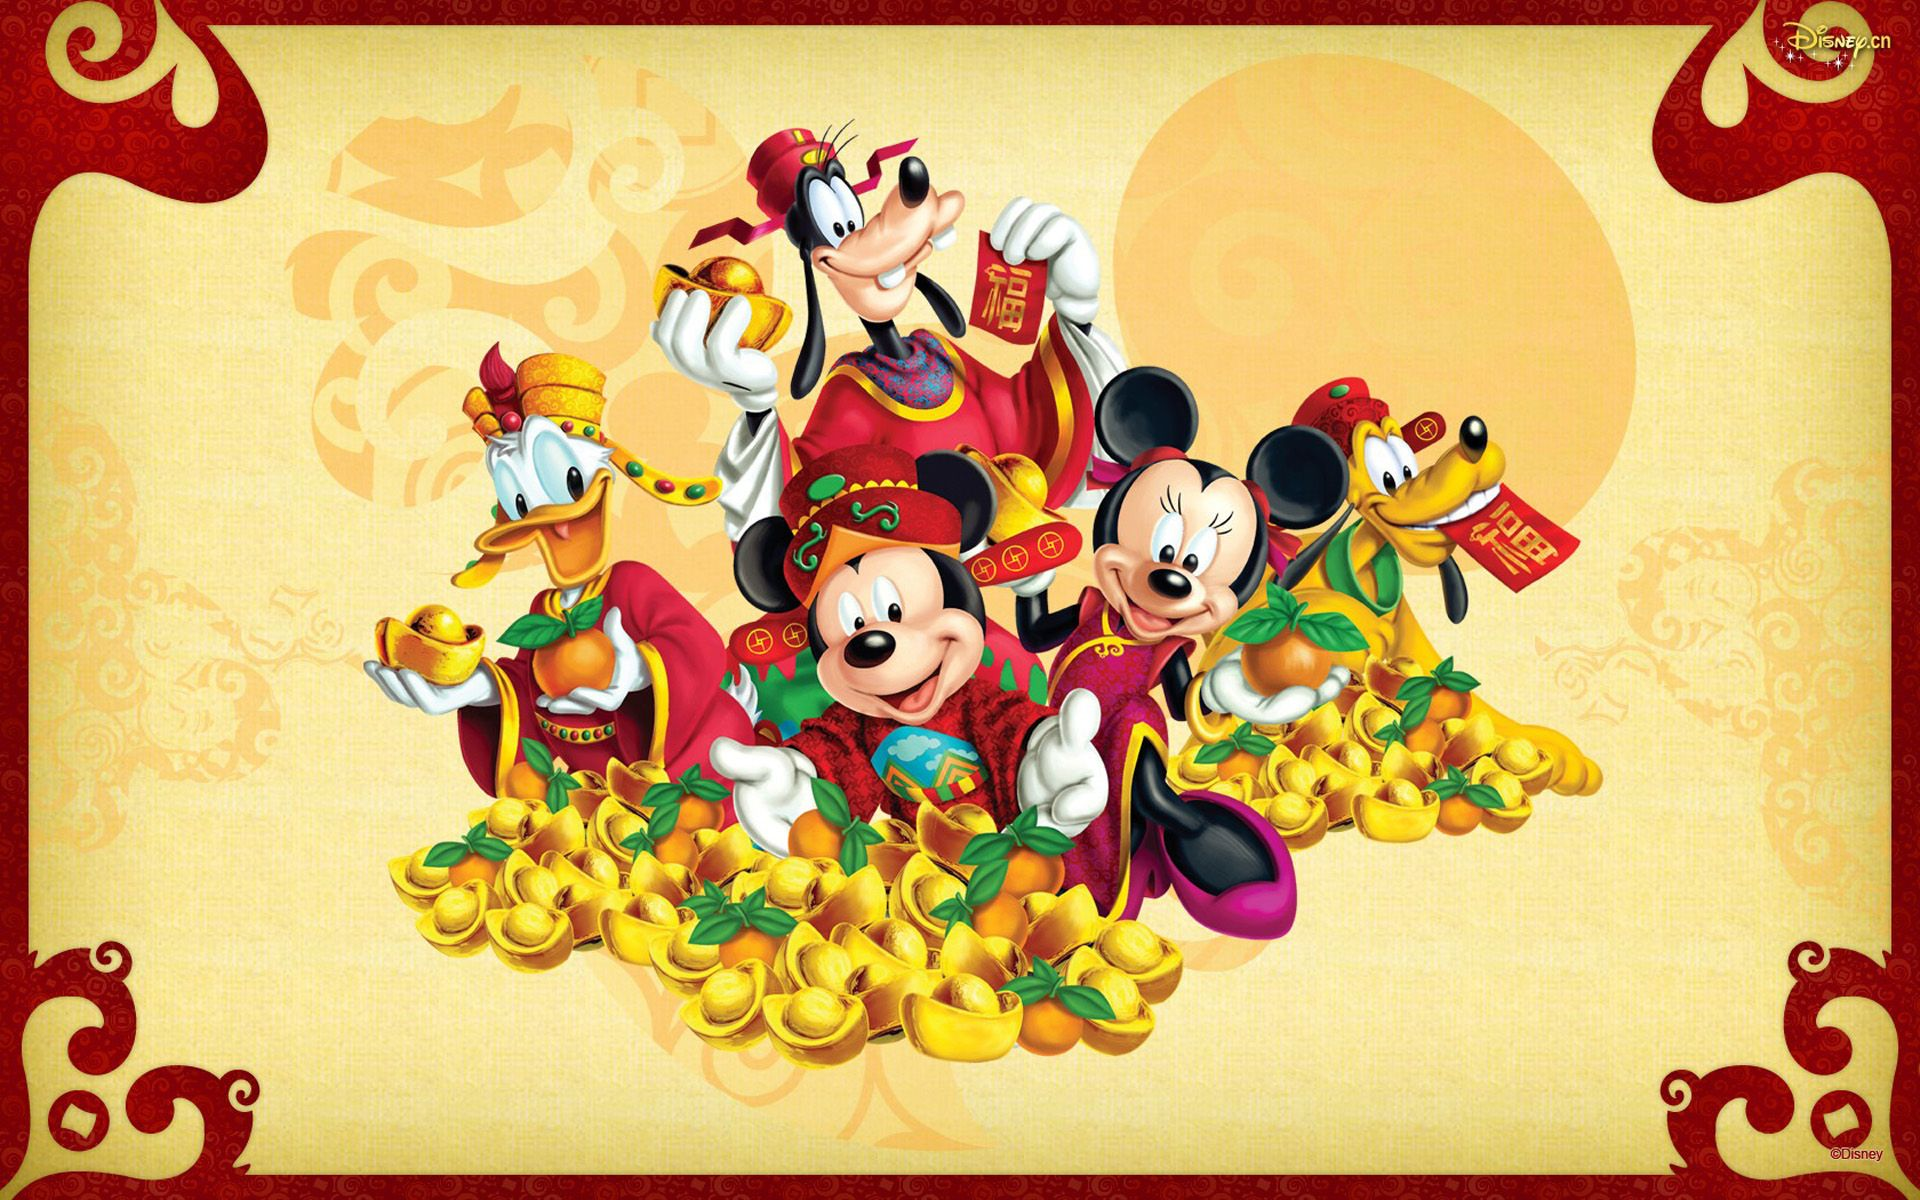 1920x1200 Mickey And Minnie Mouse Donald Duck And Pluto Cartoon Disney ...